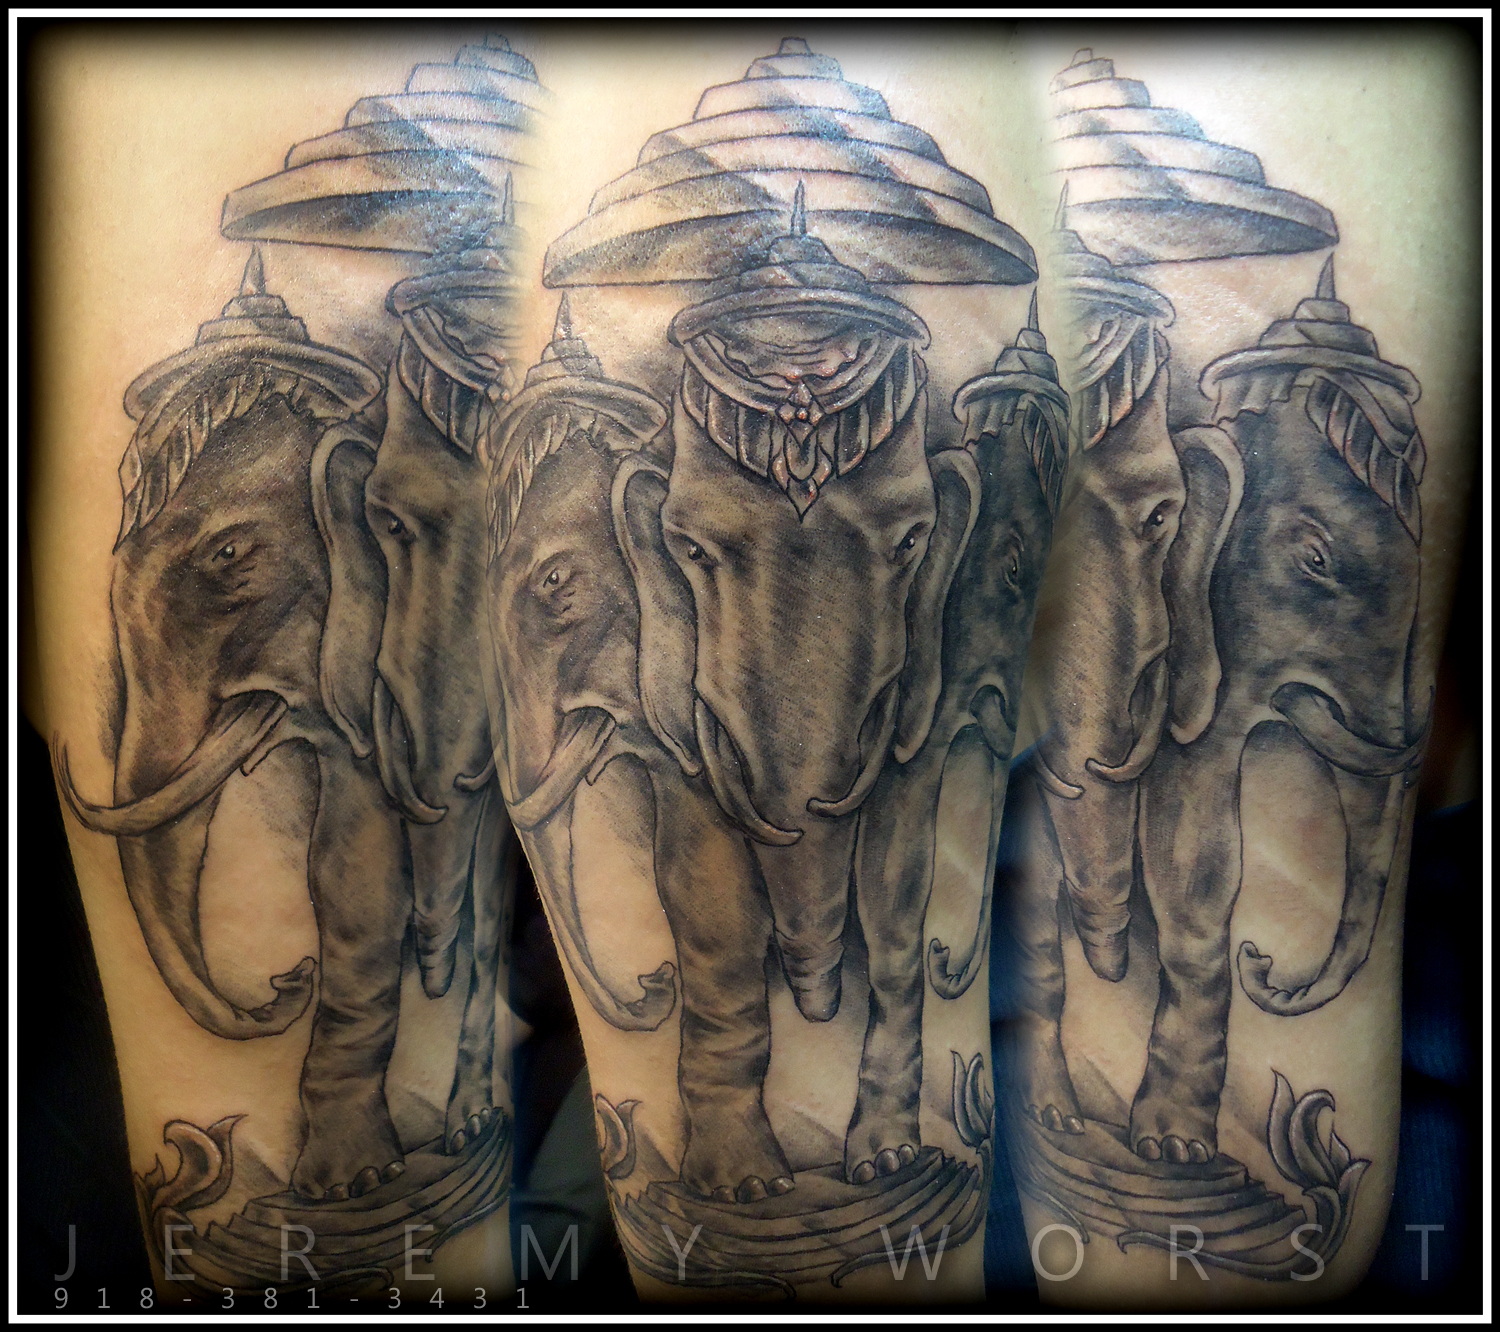 b2b7a0efe600d 2020 Other | Images: Khmer Pride Tattoo